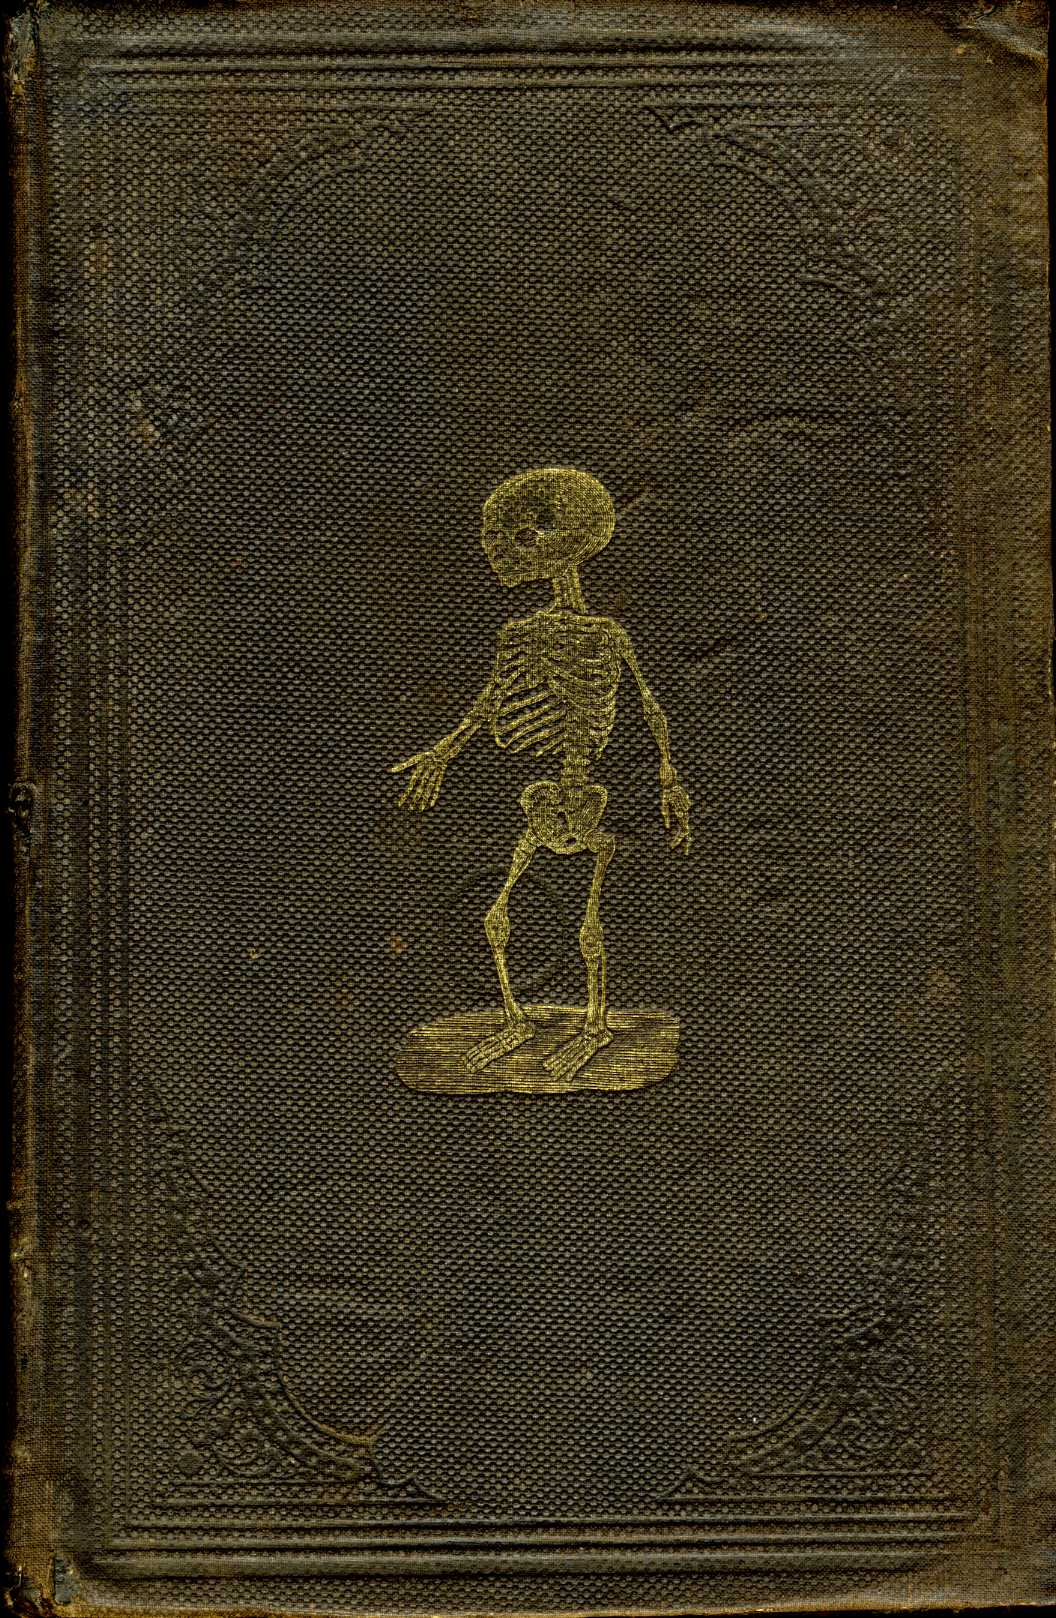 Beautiful Old Book Covers : Civil war era medical books page